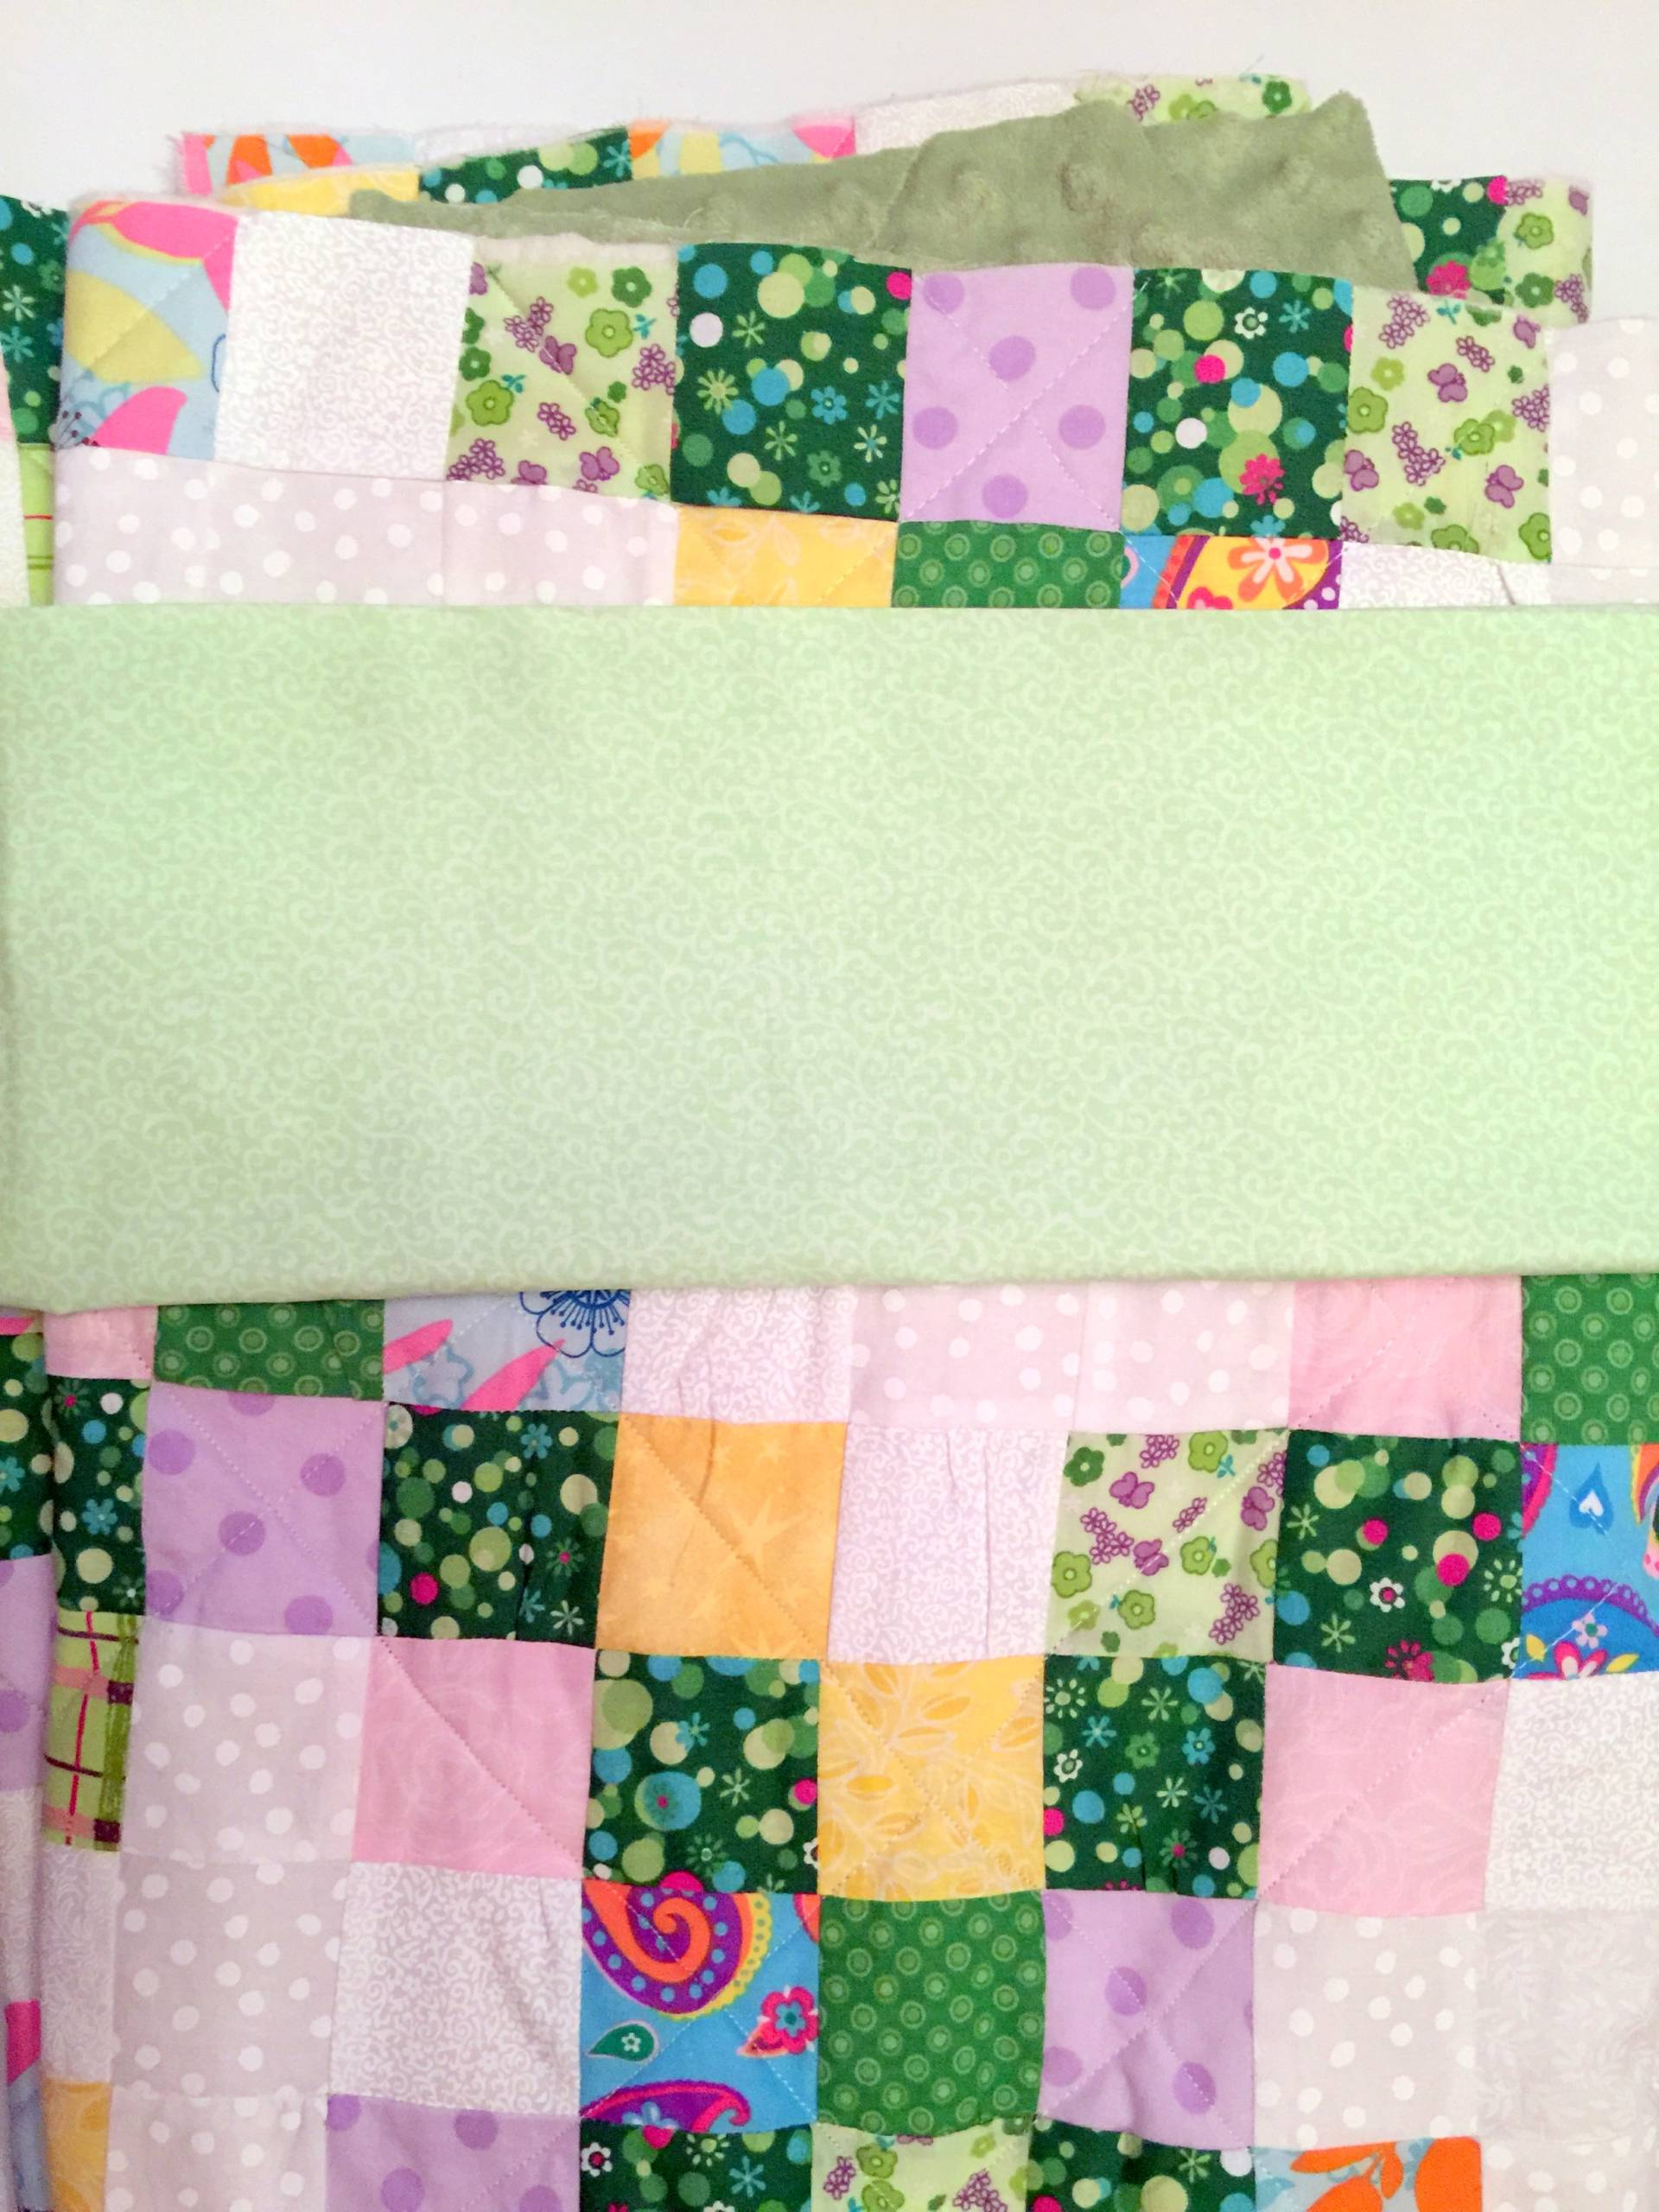 binding fabric for a green irish chain baby quilt